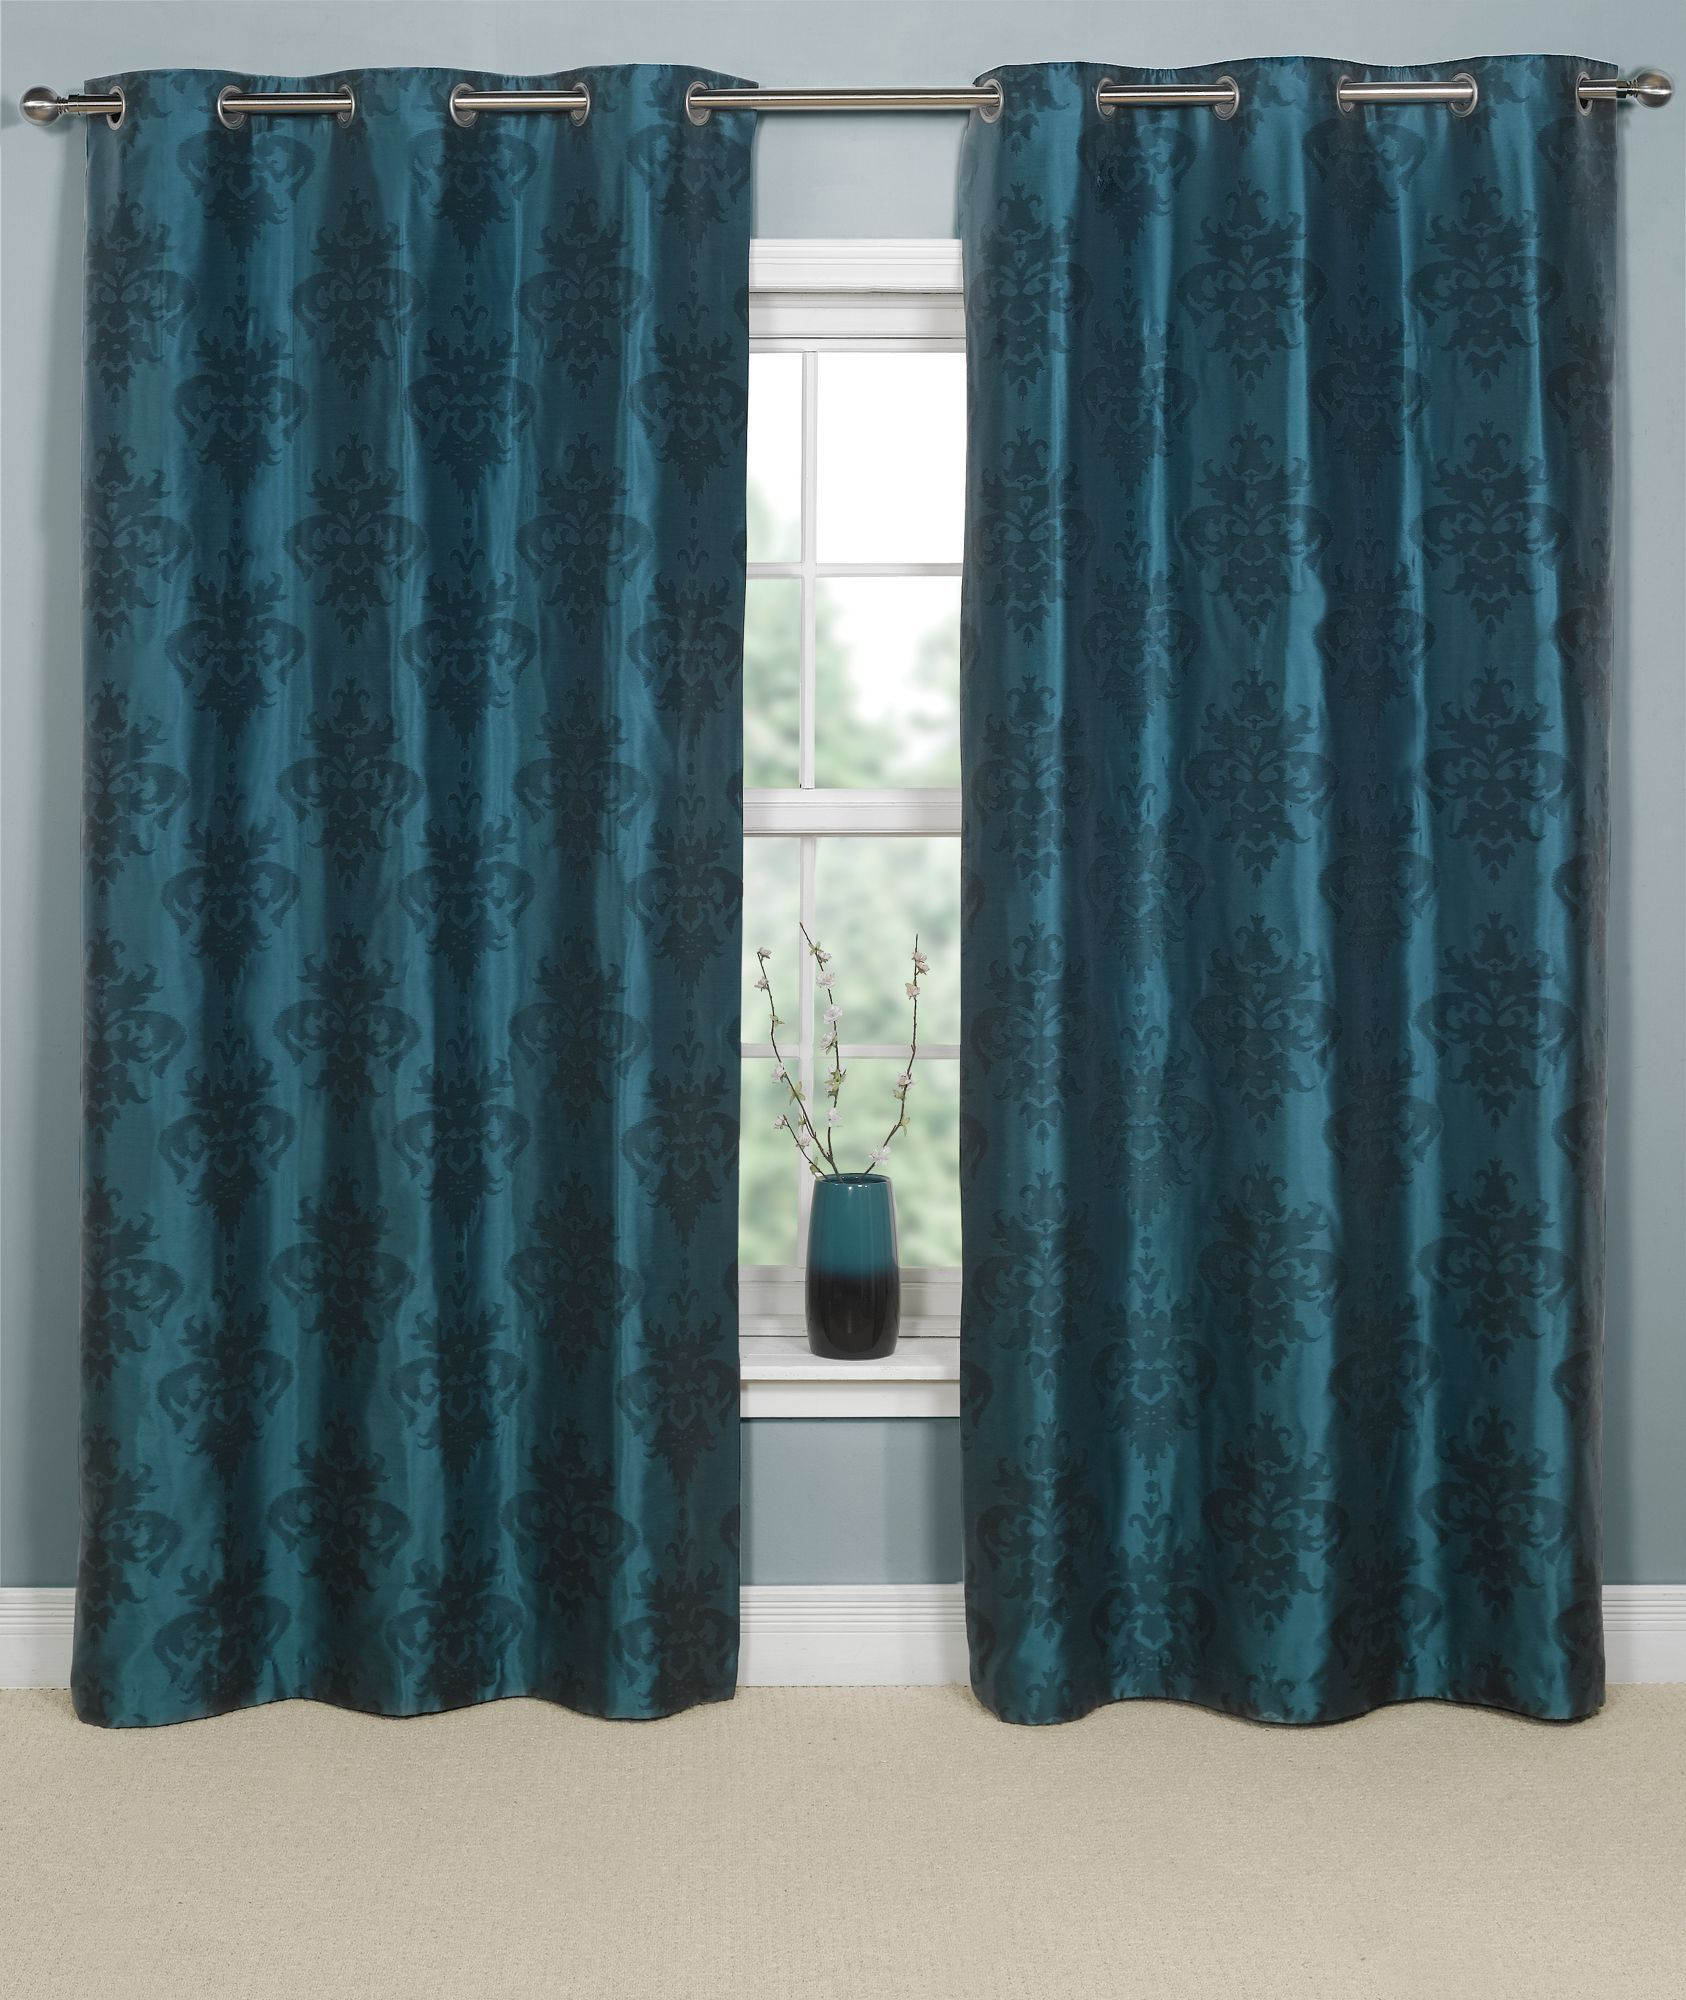 cotton mickey teal brown green pair curtain curtains heavy children custom drapery mouse beige woven shower and drapes boys designer best blue design or room